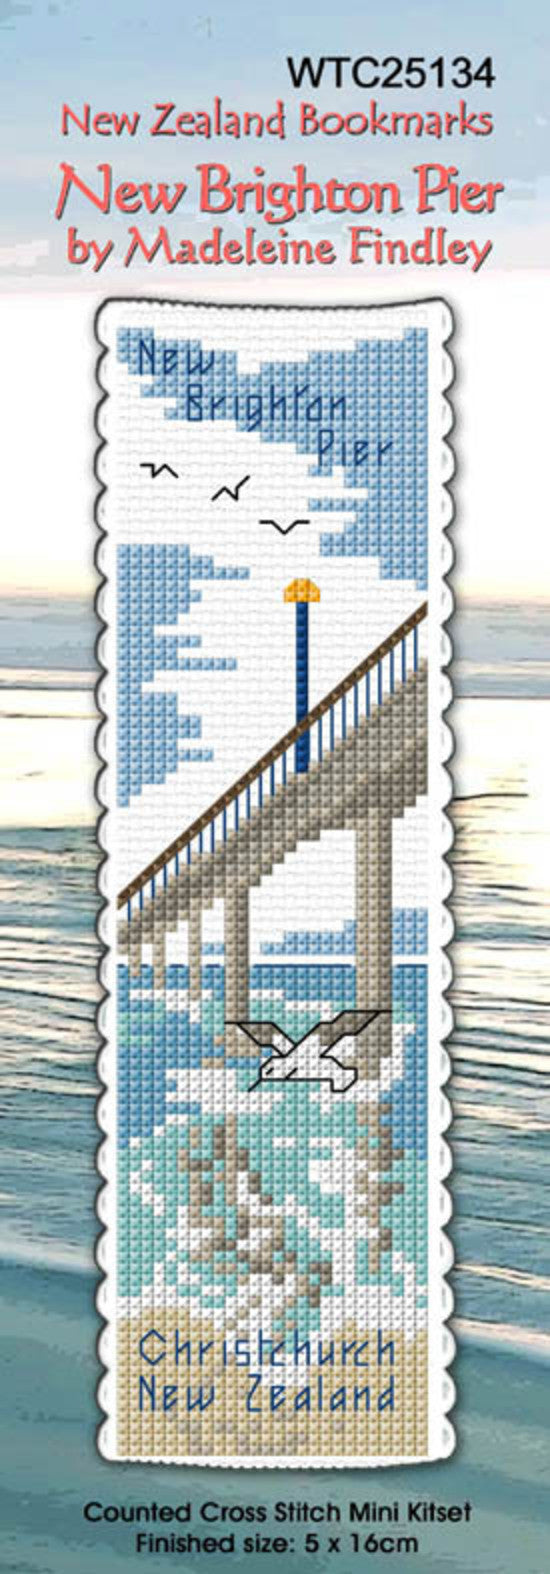 Cross-stitch bookmark - New Brighton Pier